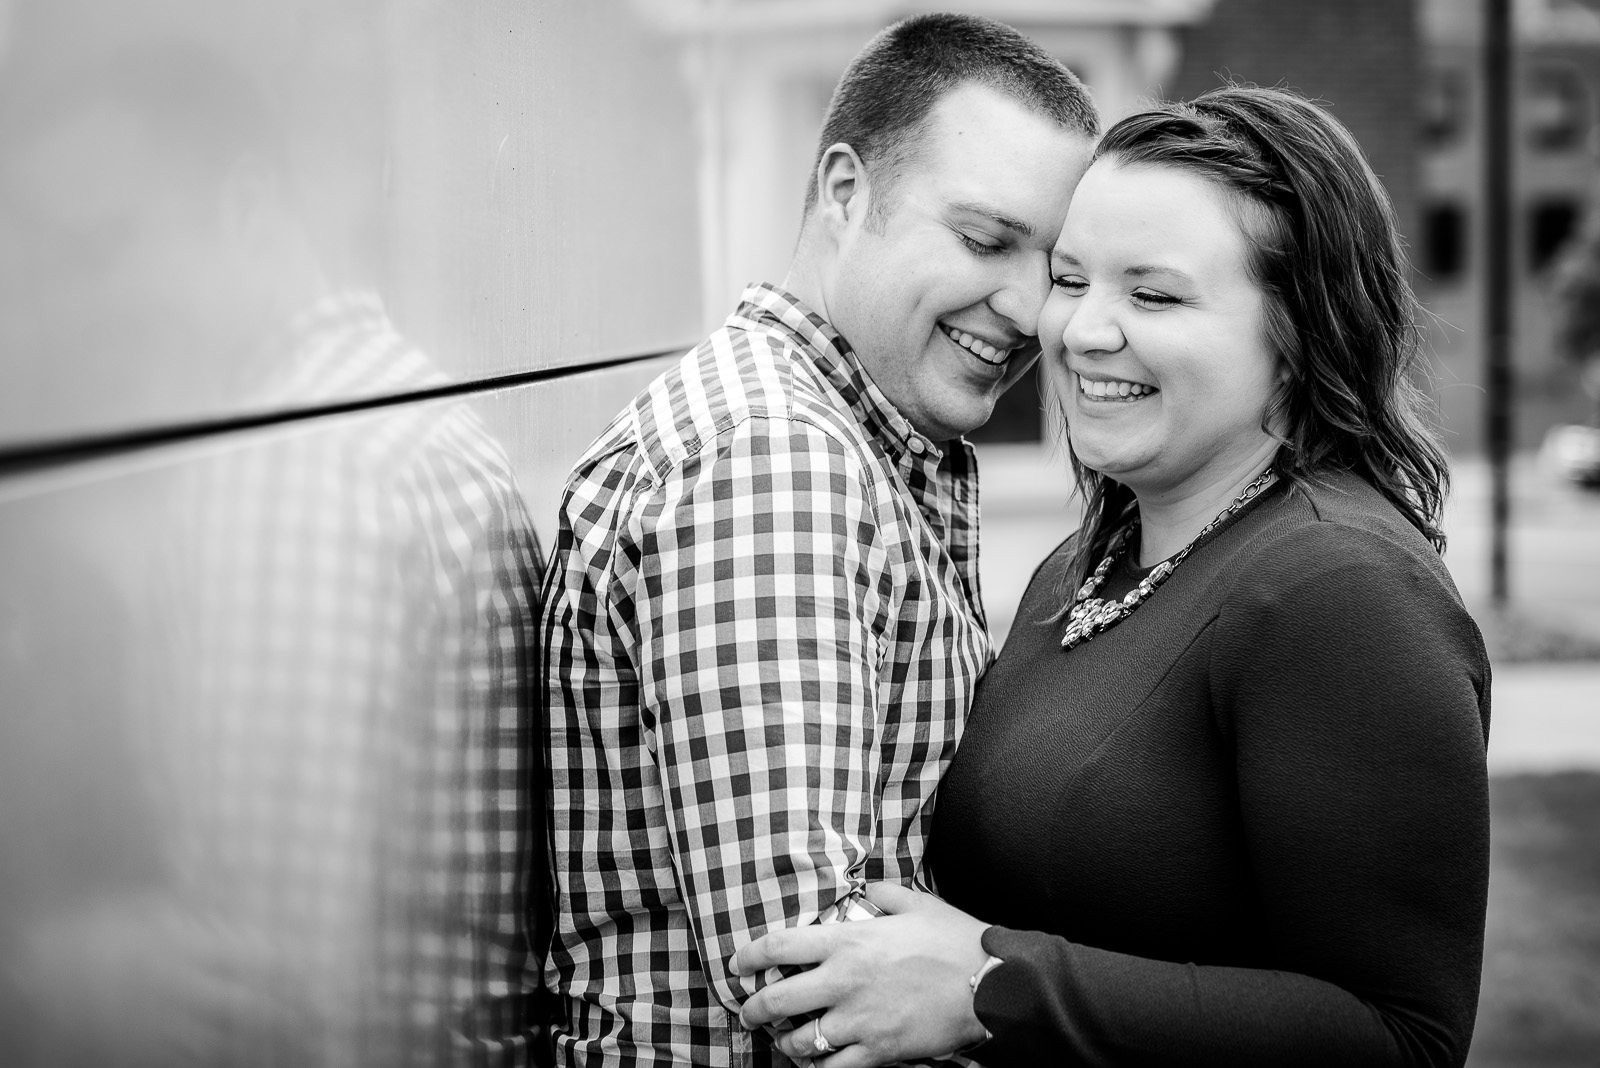 Eric_and_Christy_Photography_Blog_Stacey_Geoff_Engagement-23